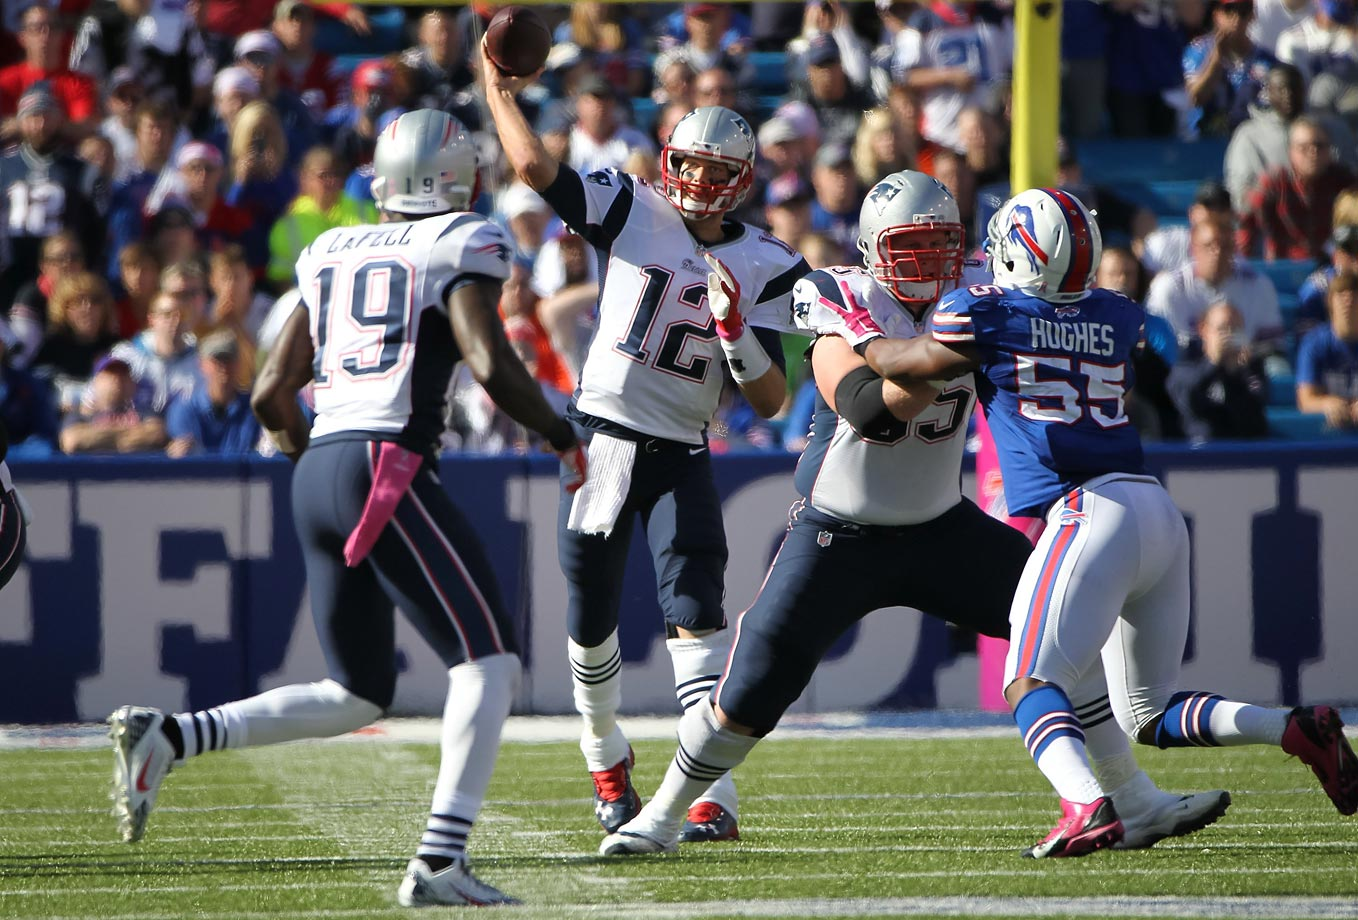 The passing game remained fruitful in New England's next game, a 37-22 win over Buffalo. Brady threw for 361 yards and four touchdowns – two of which went to Brandon LaFell -- to improve to 23-2 against the Bills in his career.